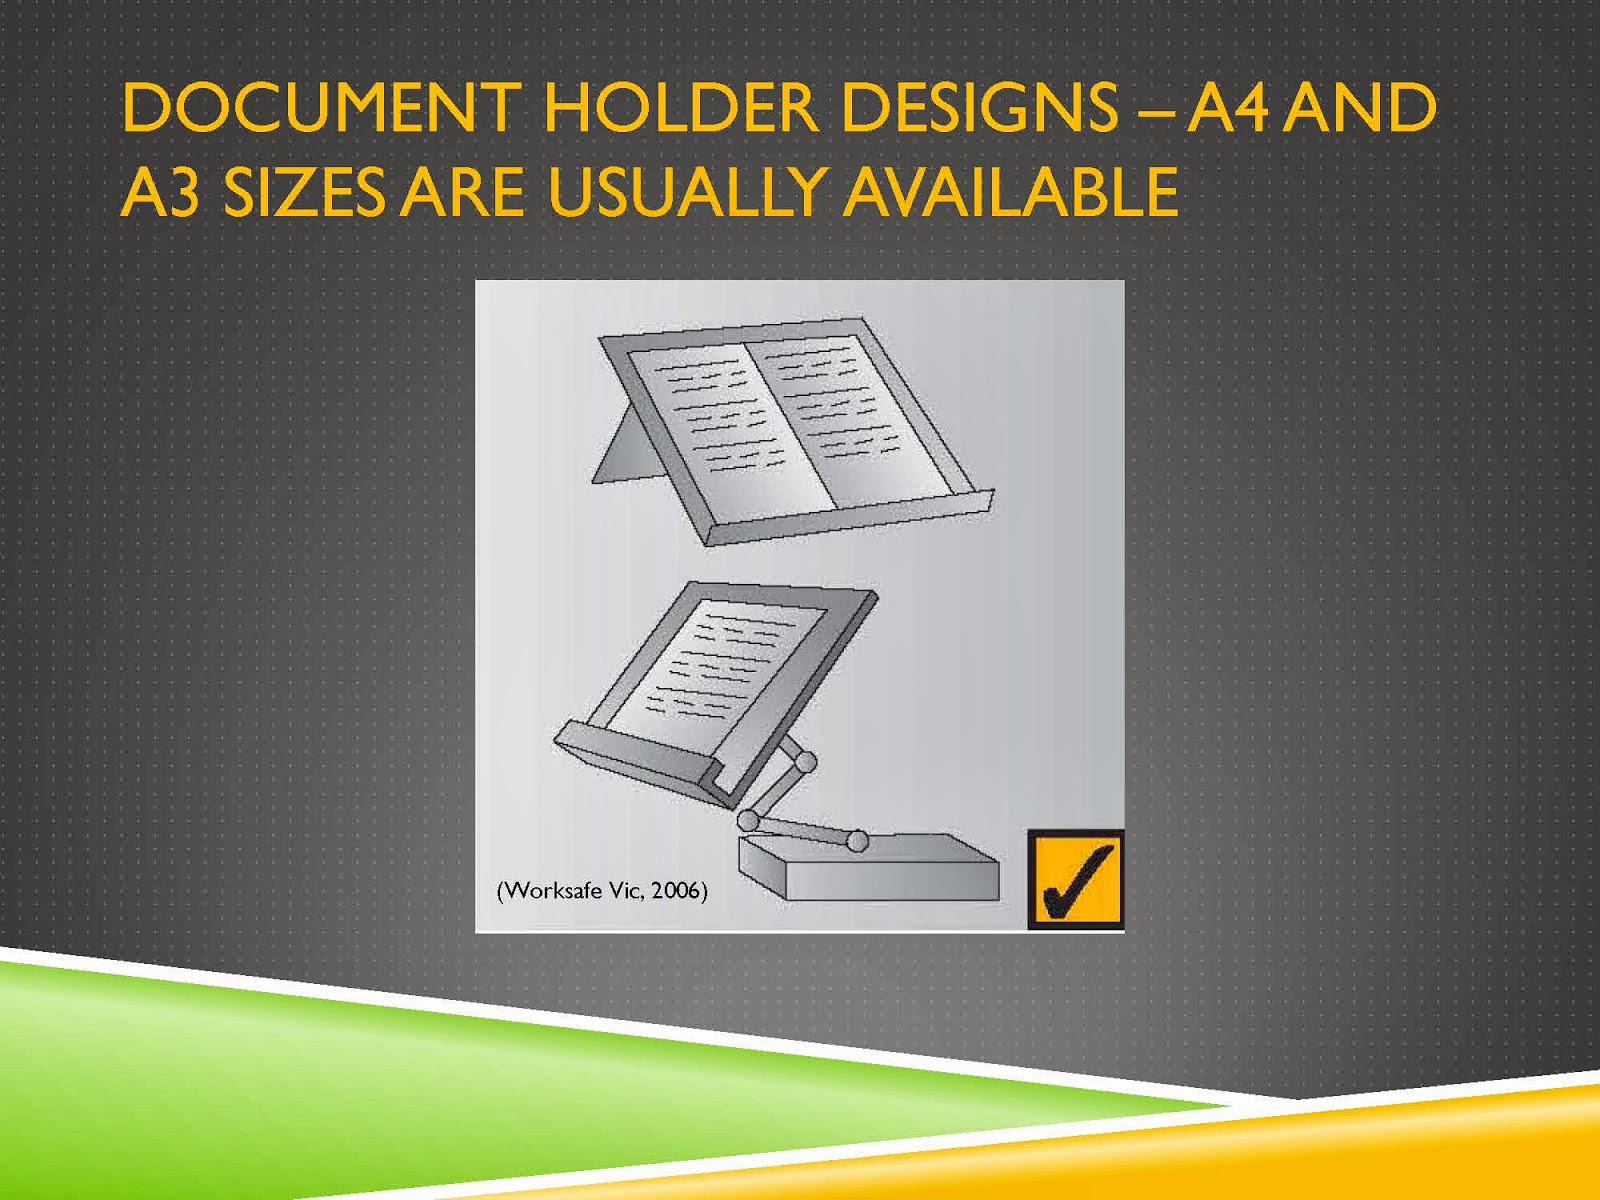 DOCUMENT HOLDER DESIGNS